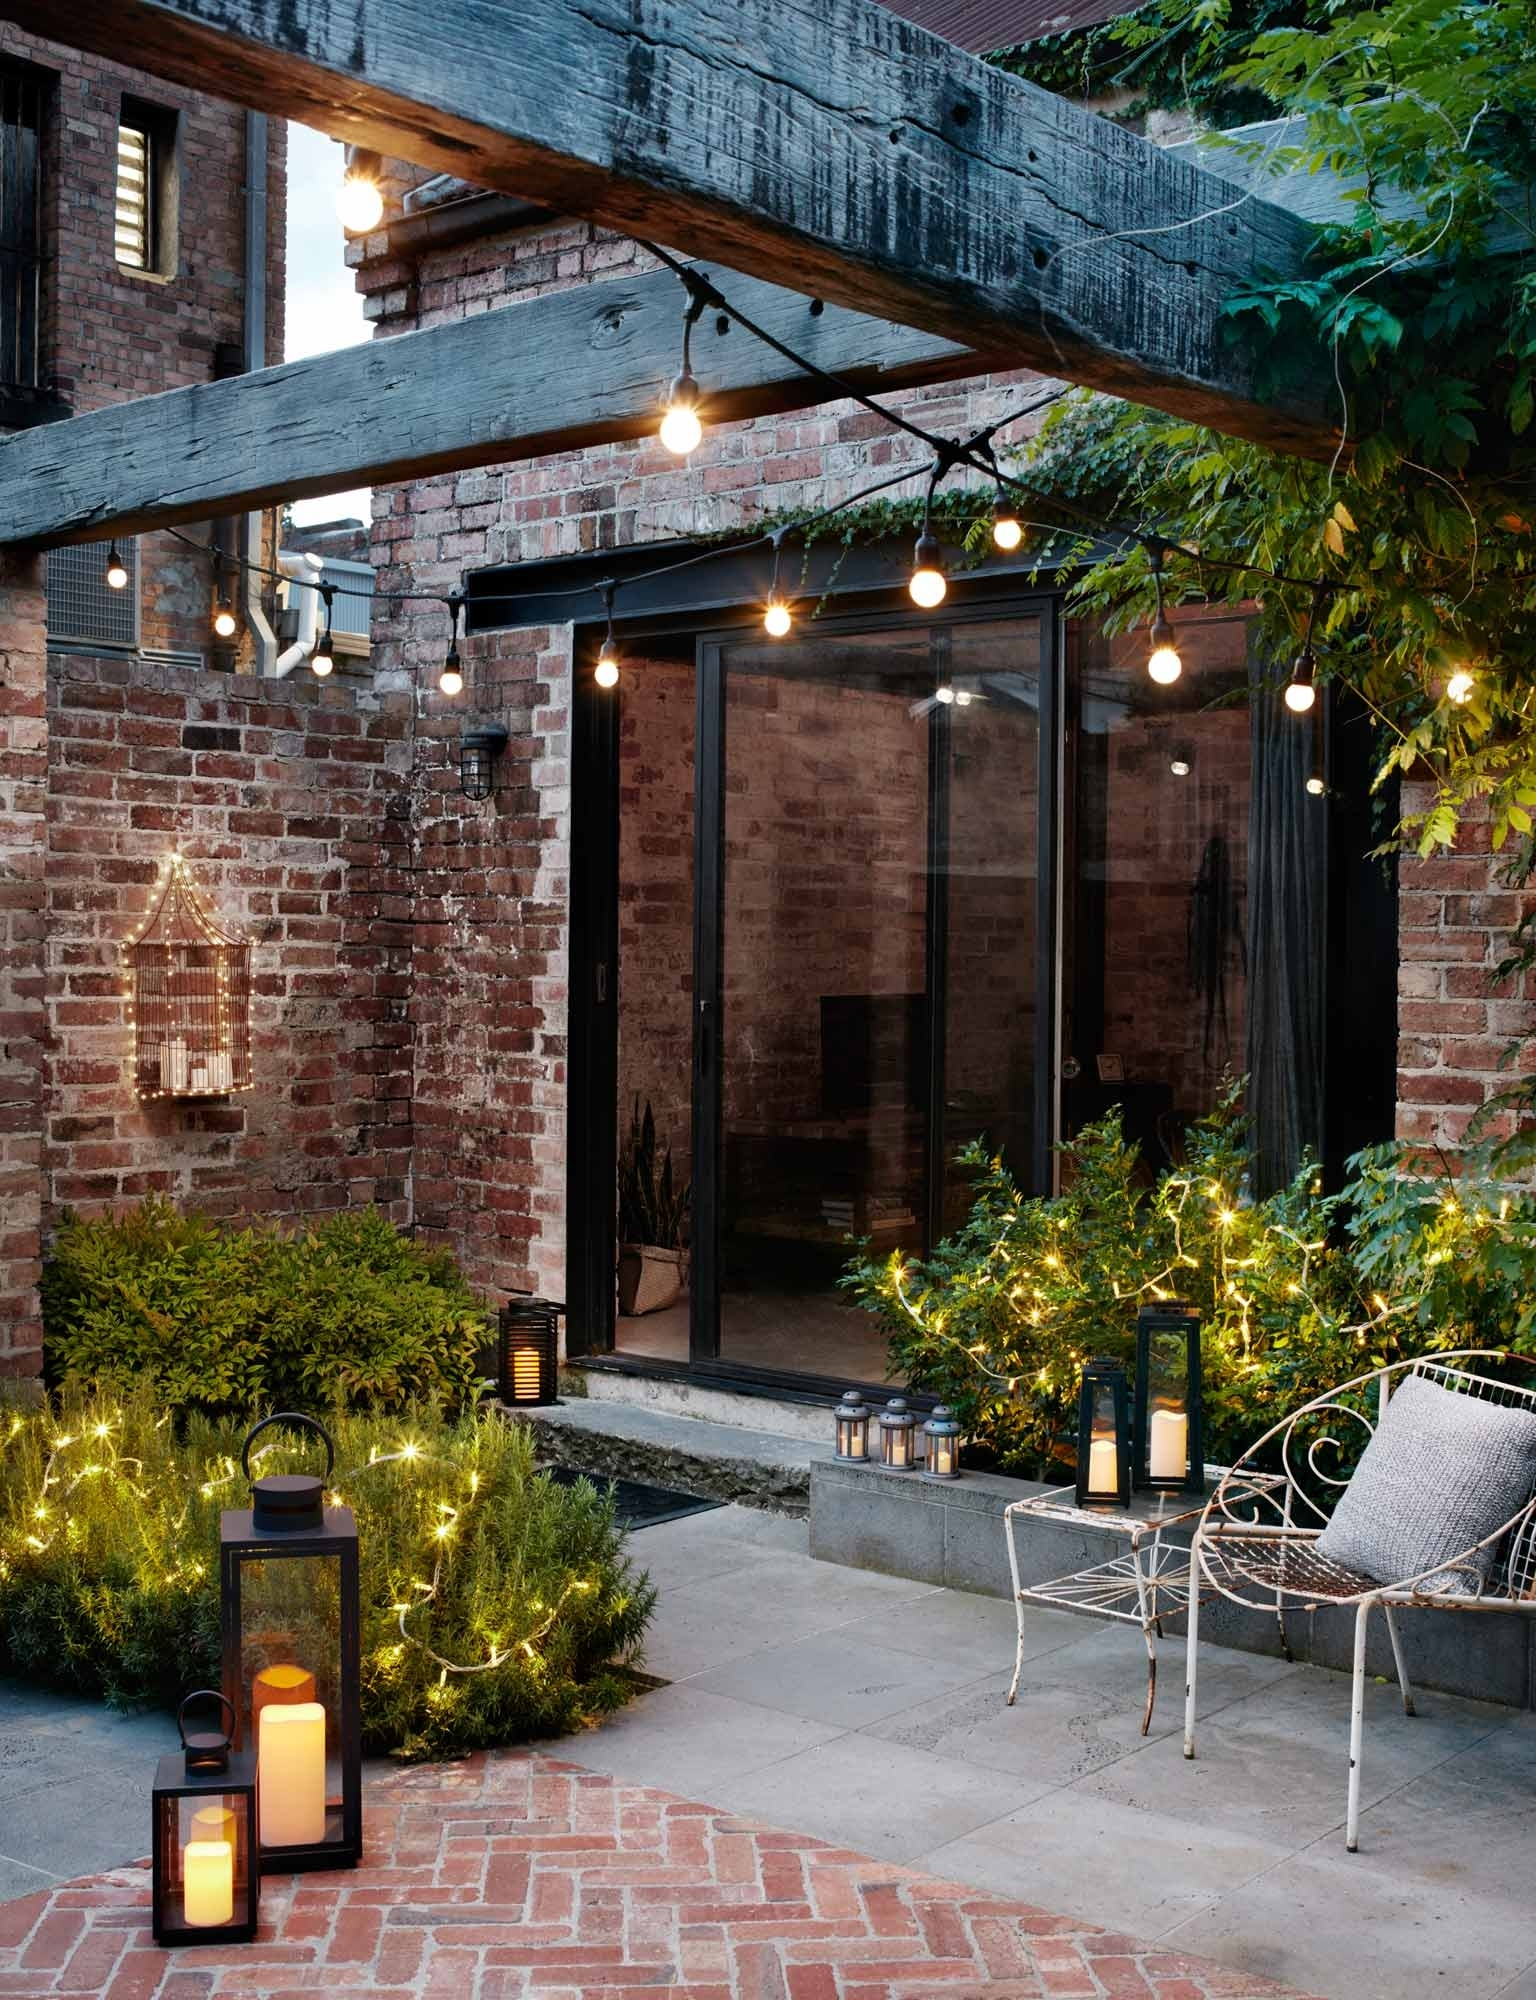 Garden Lighting Ideas | Inspiration | Lights4Fun.co.uk in Outdoor Gazebo Lanterns (Image 8 of 20)